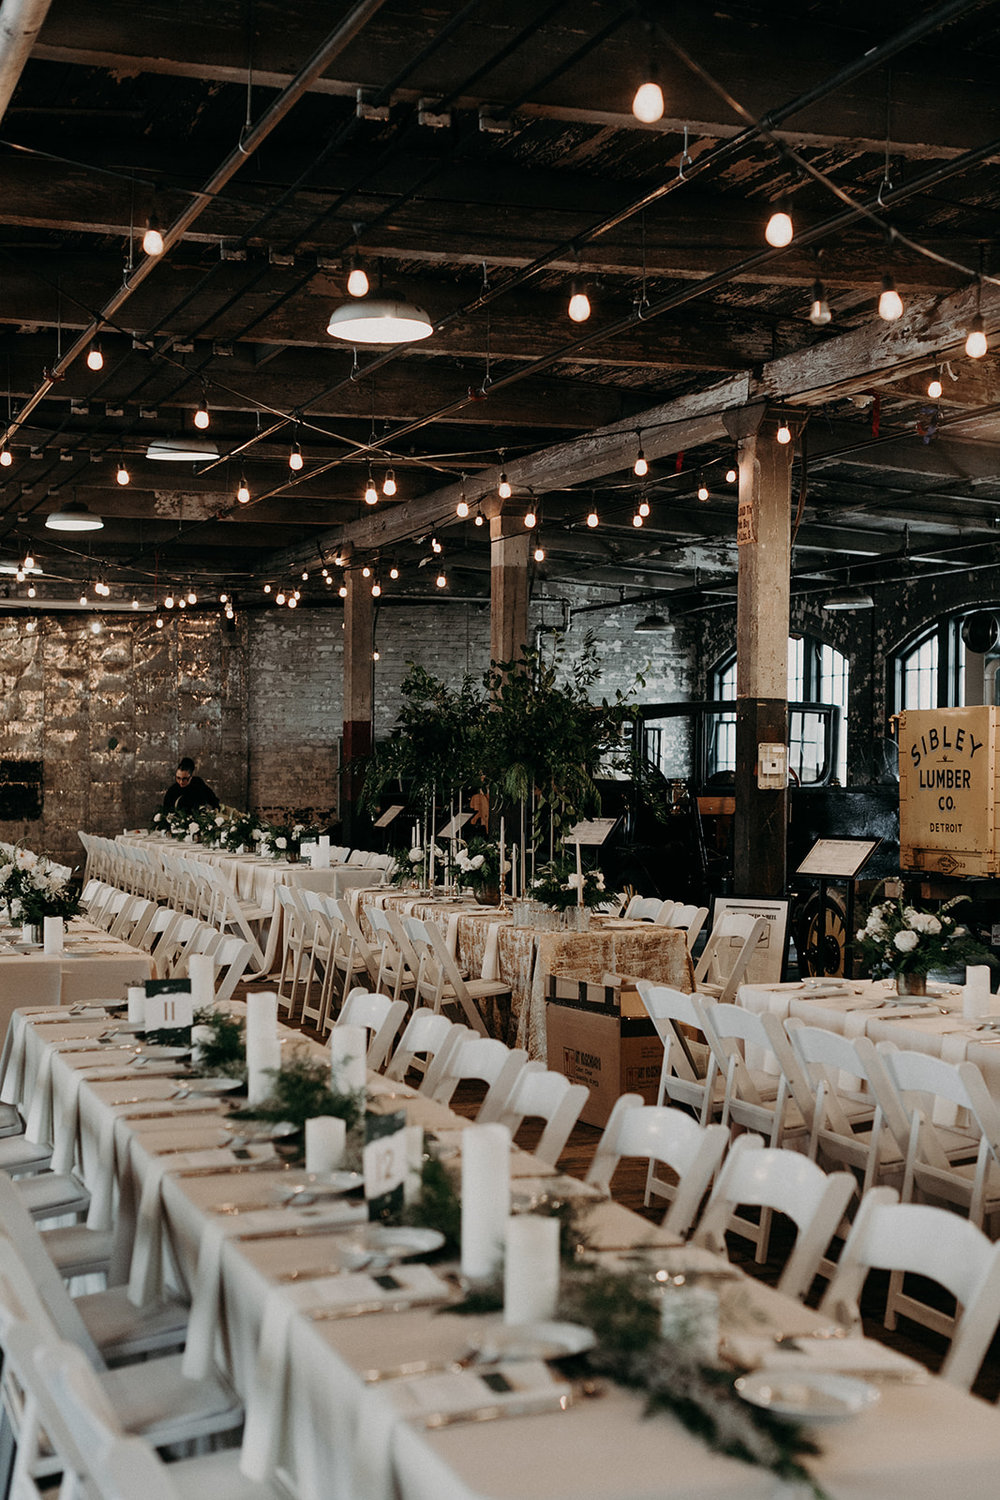 custom wedding planners detroit michigan event design paper goods florals tablescape dinner reception table settings